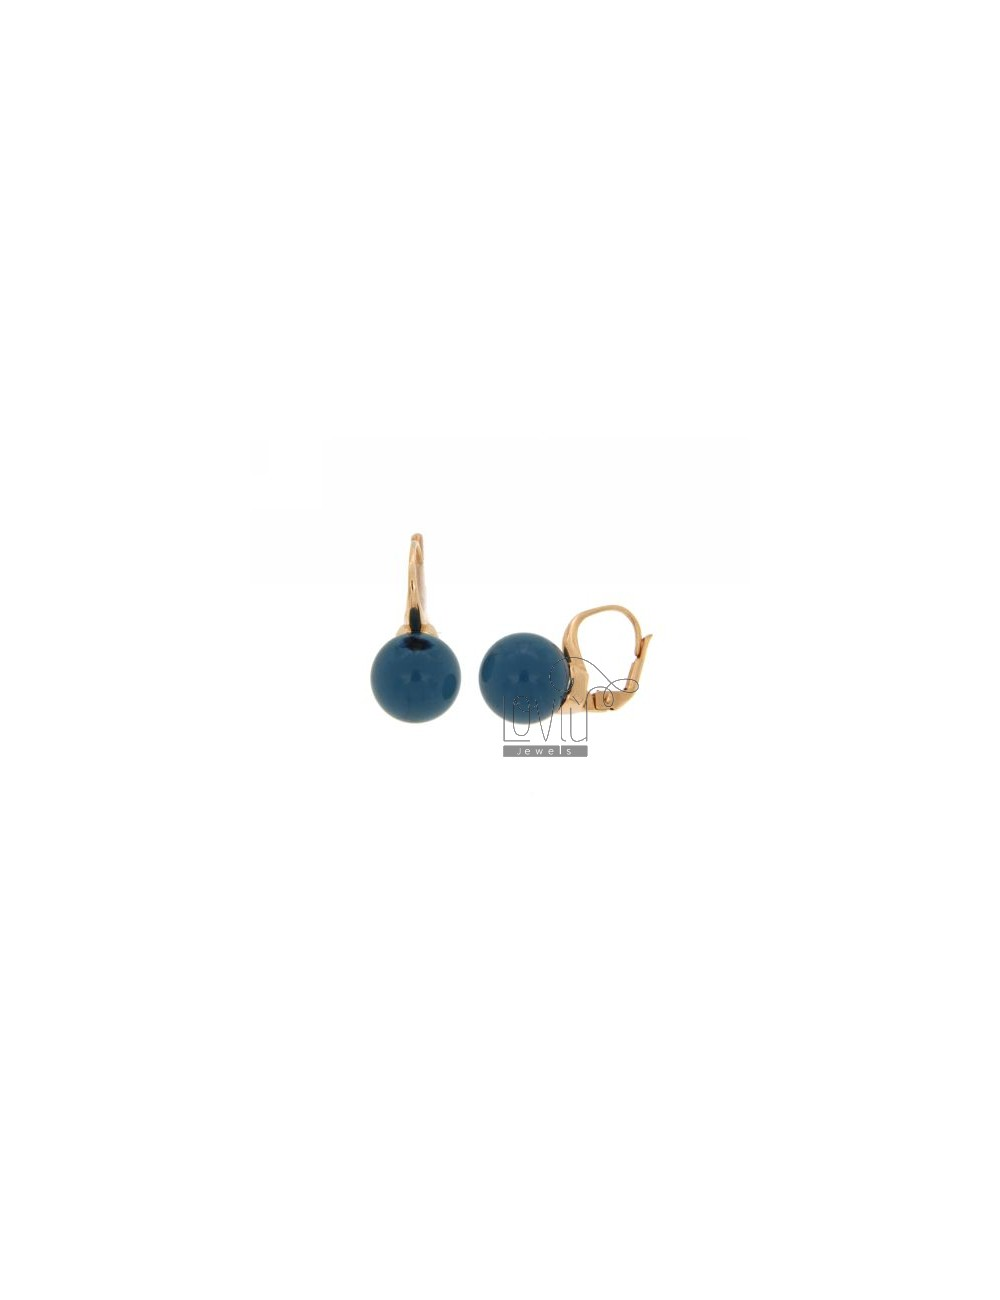 Monachella EARRINGS WITH BALL 12 MM TRANSPARENT BLUE STONE HYDROTHERMAL 1 SILVER ROSE GOLD PLATED 925 TITLE